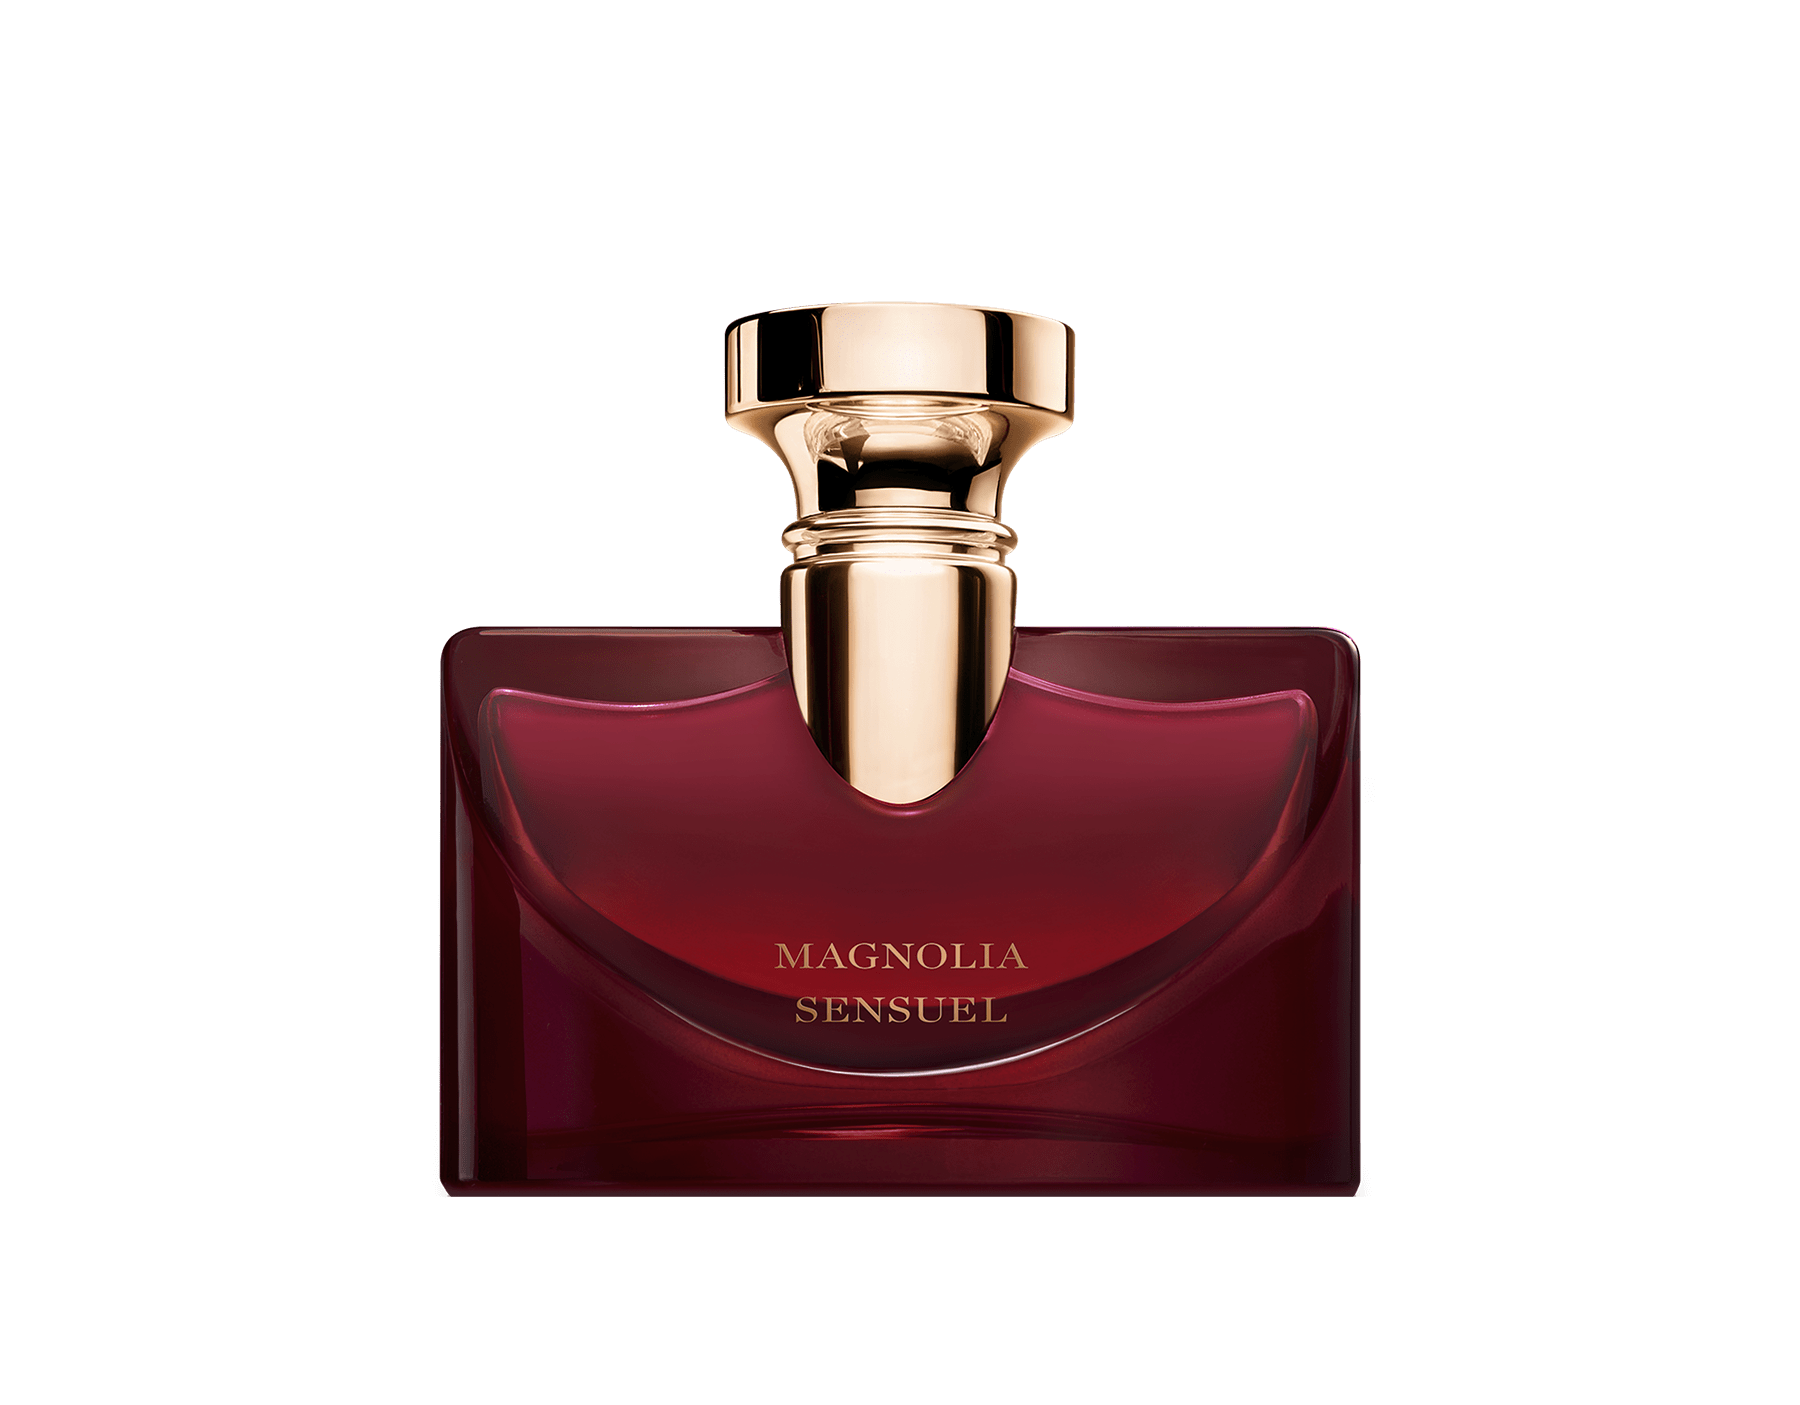 A generous and sensual fragrance building harmony around the delicate yet strong magnolia flower, the ultimate symbol of feminine beauty 97734 image 1